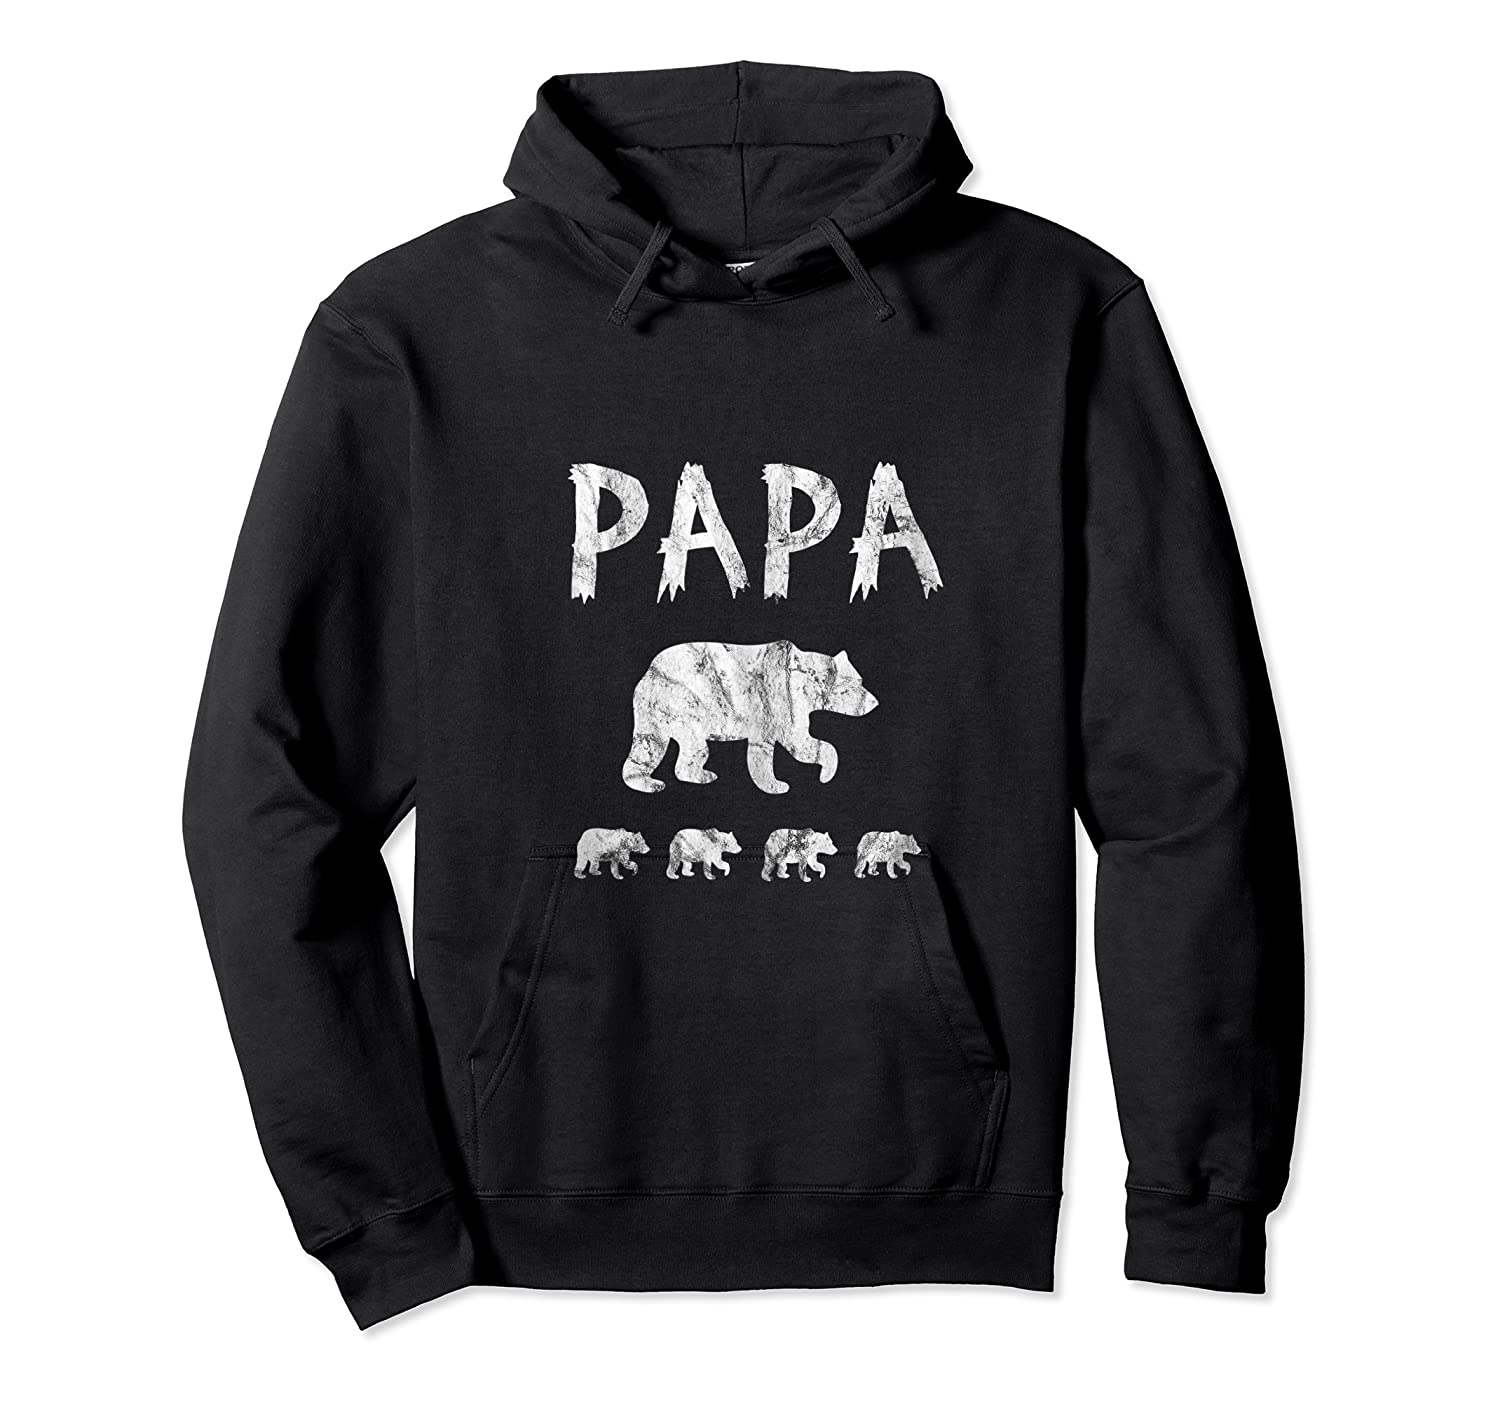 Dad Of 4 Or Quadruplets Papa Bear Shirts Unisex Pullover Hoodie